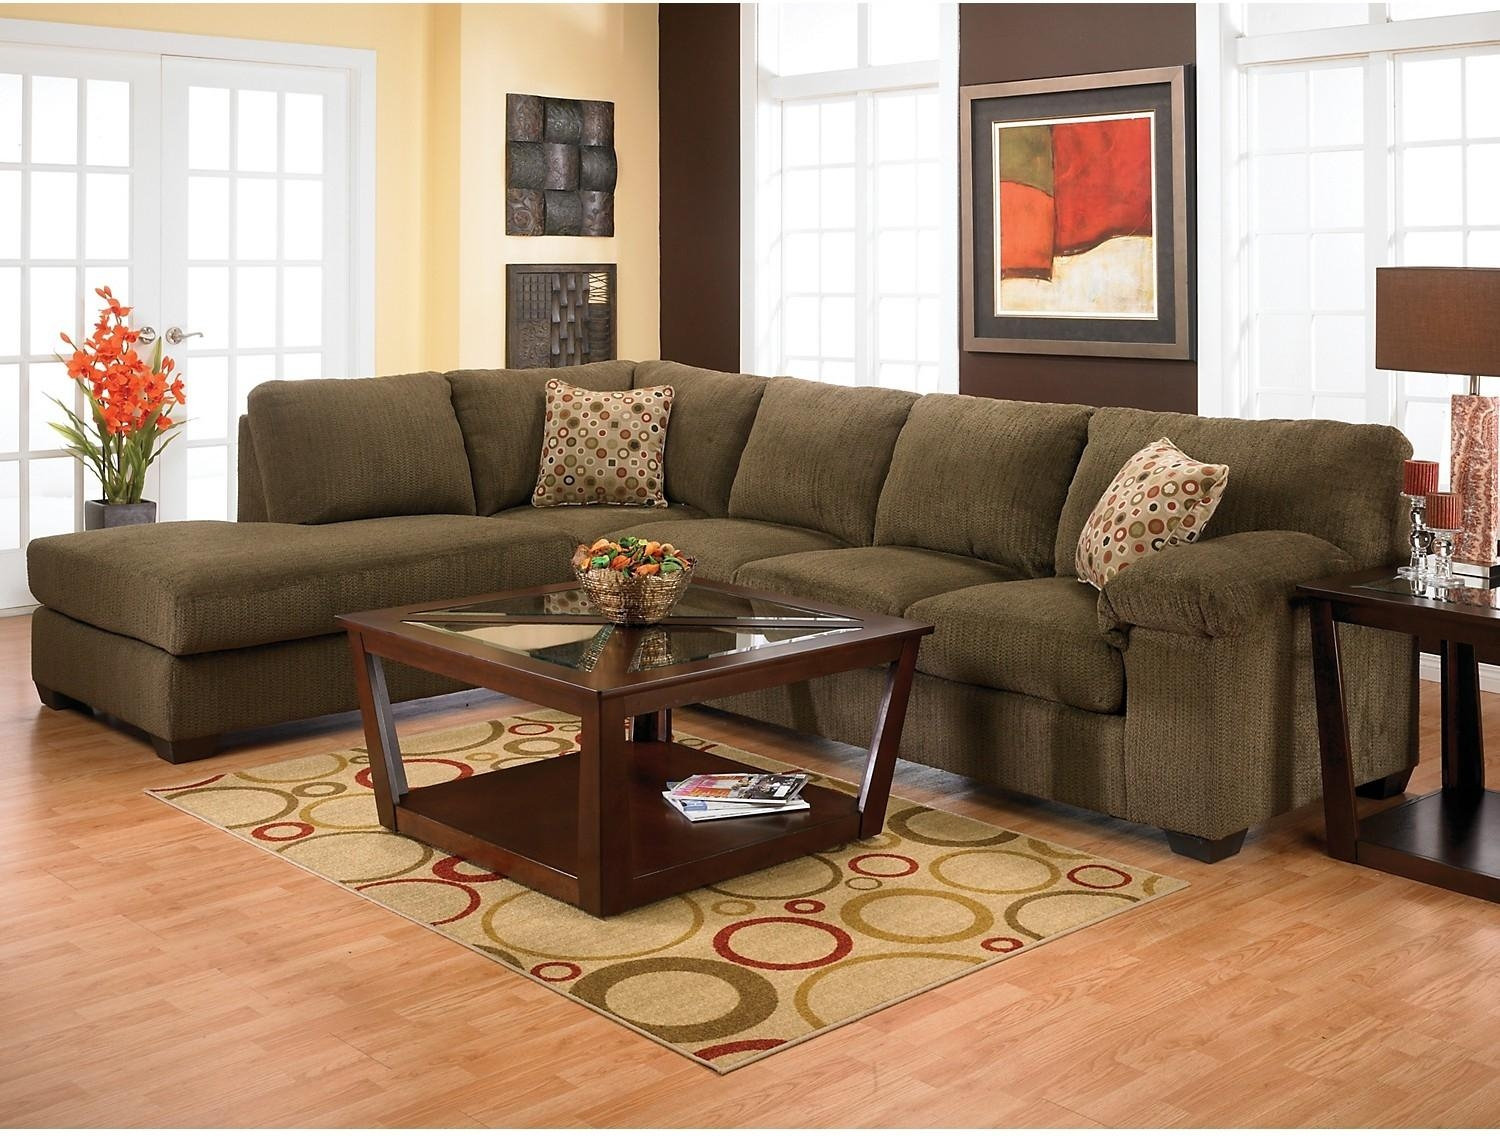 Chenille Sectional Sofa With Chaise With Concept Image 21936 For Chenille Sectional Sofas With Chaise (View 2 of 20)